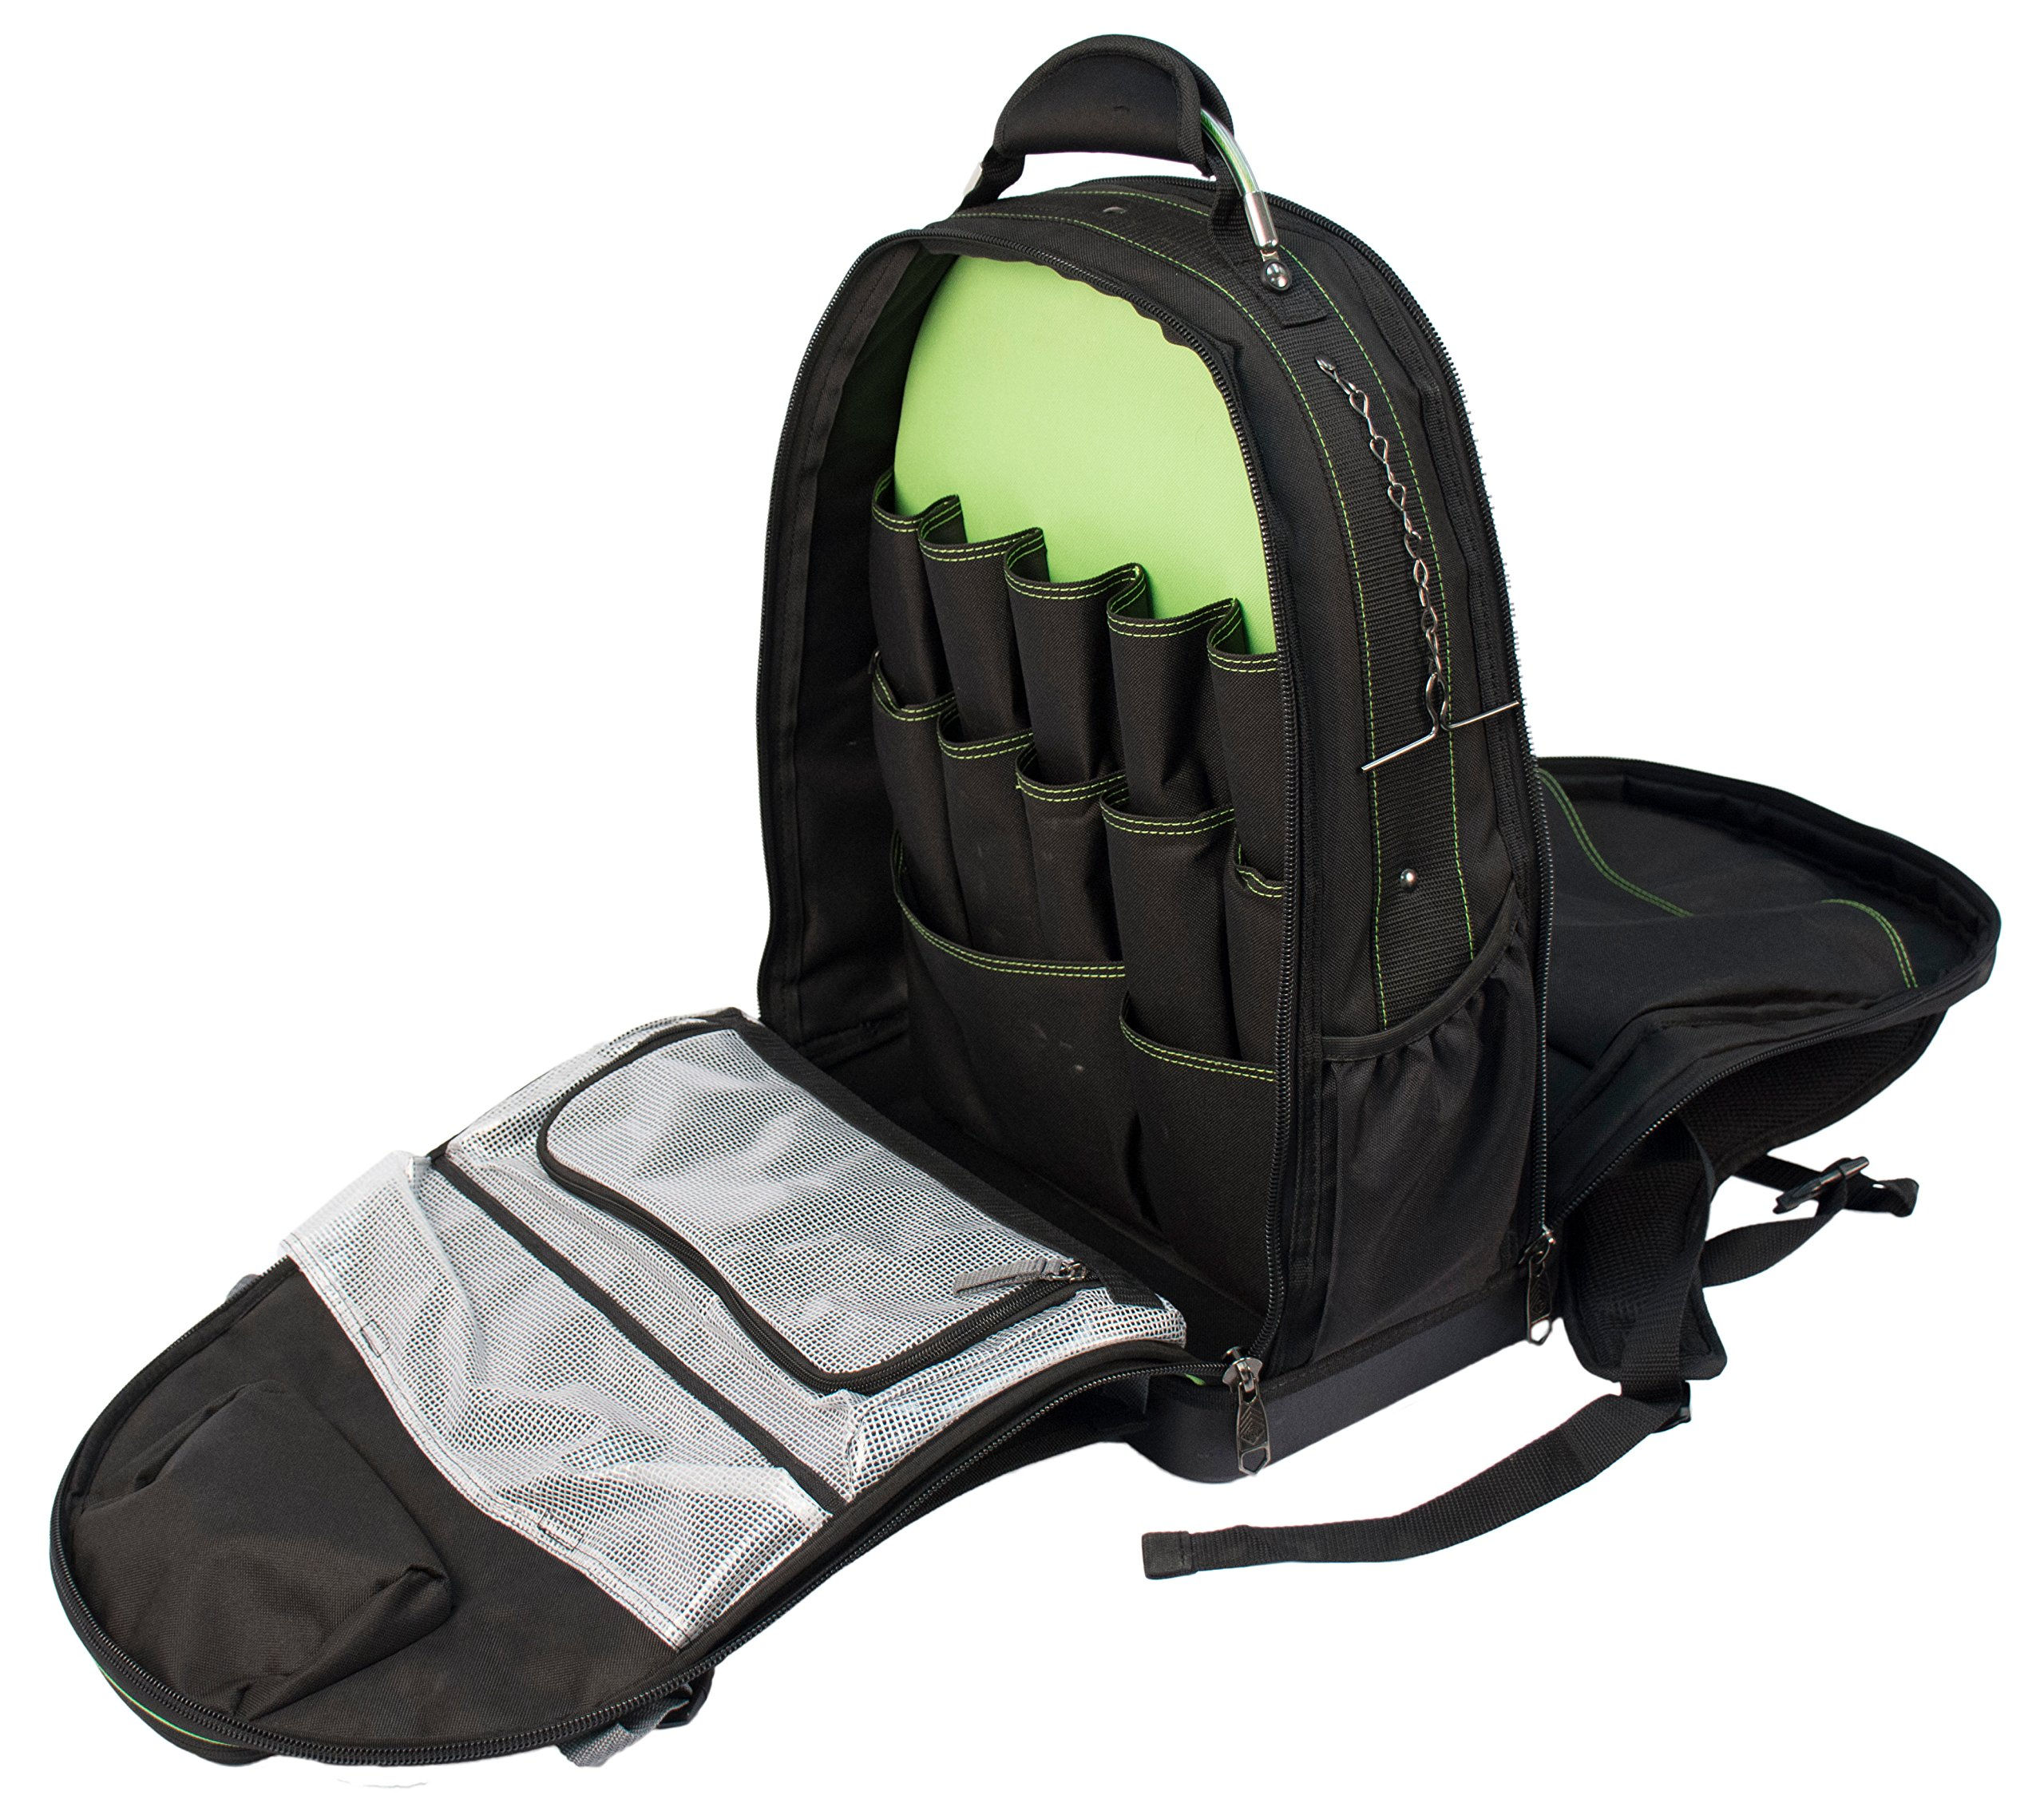 Greenlee 0158-26 Professional Tool Backpack